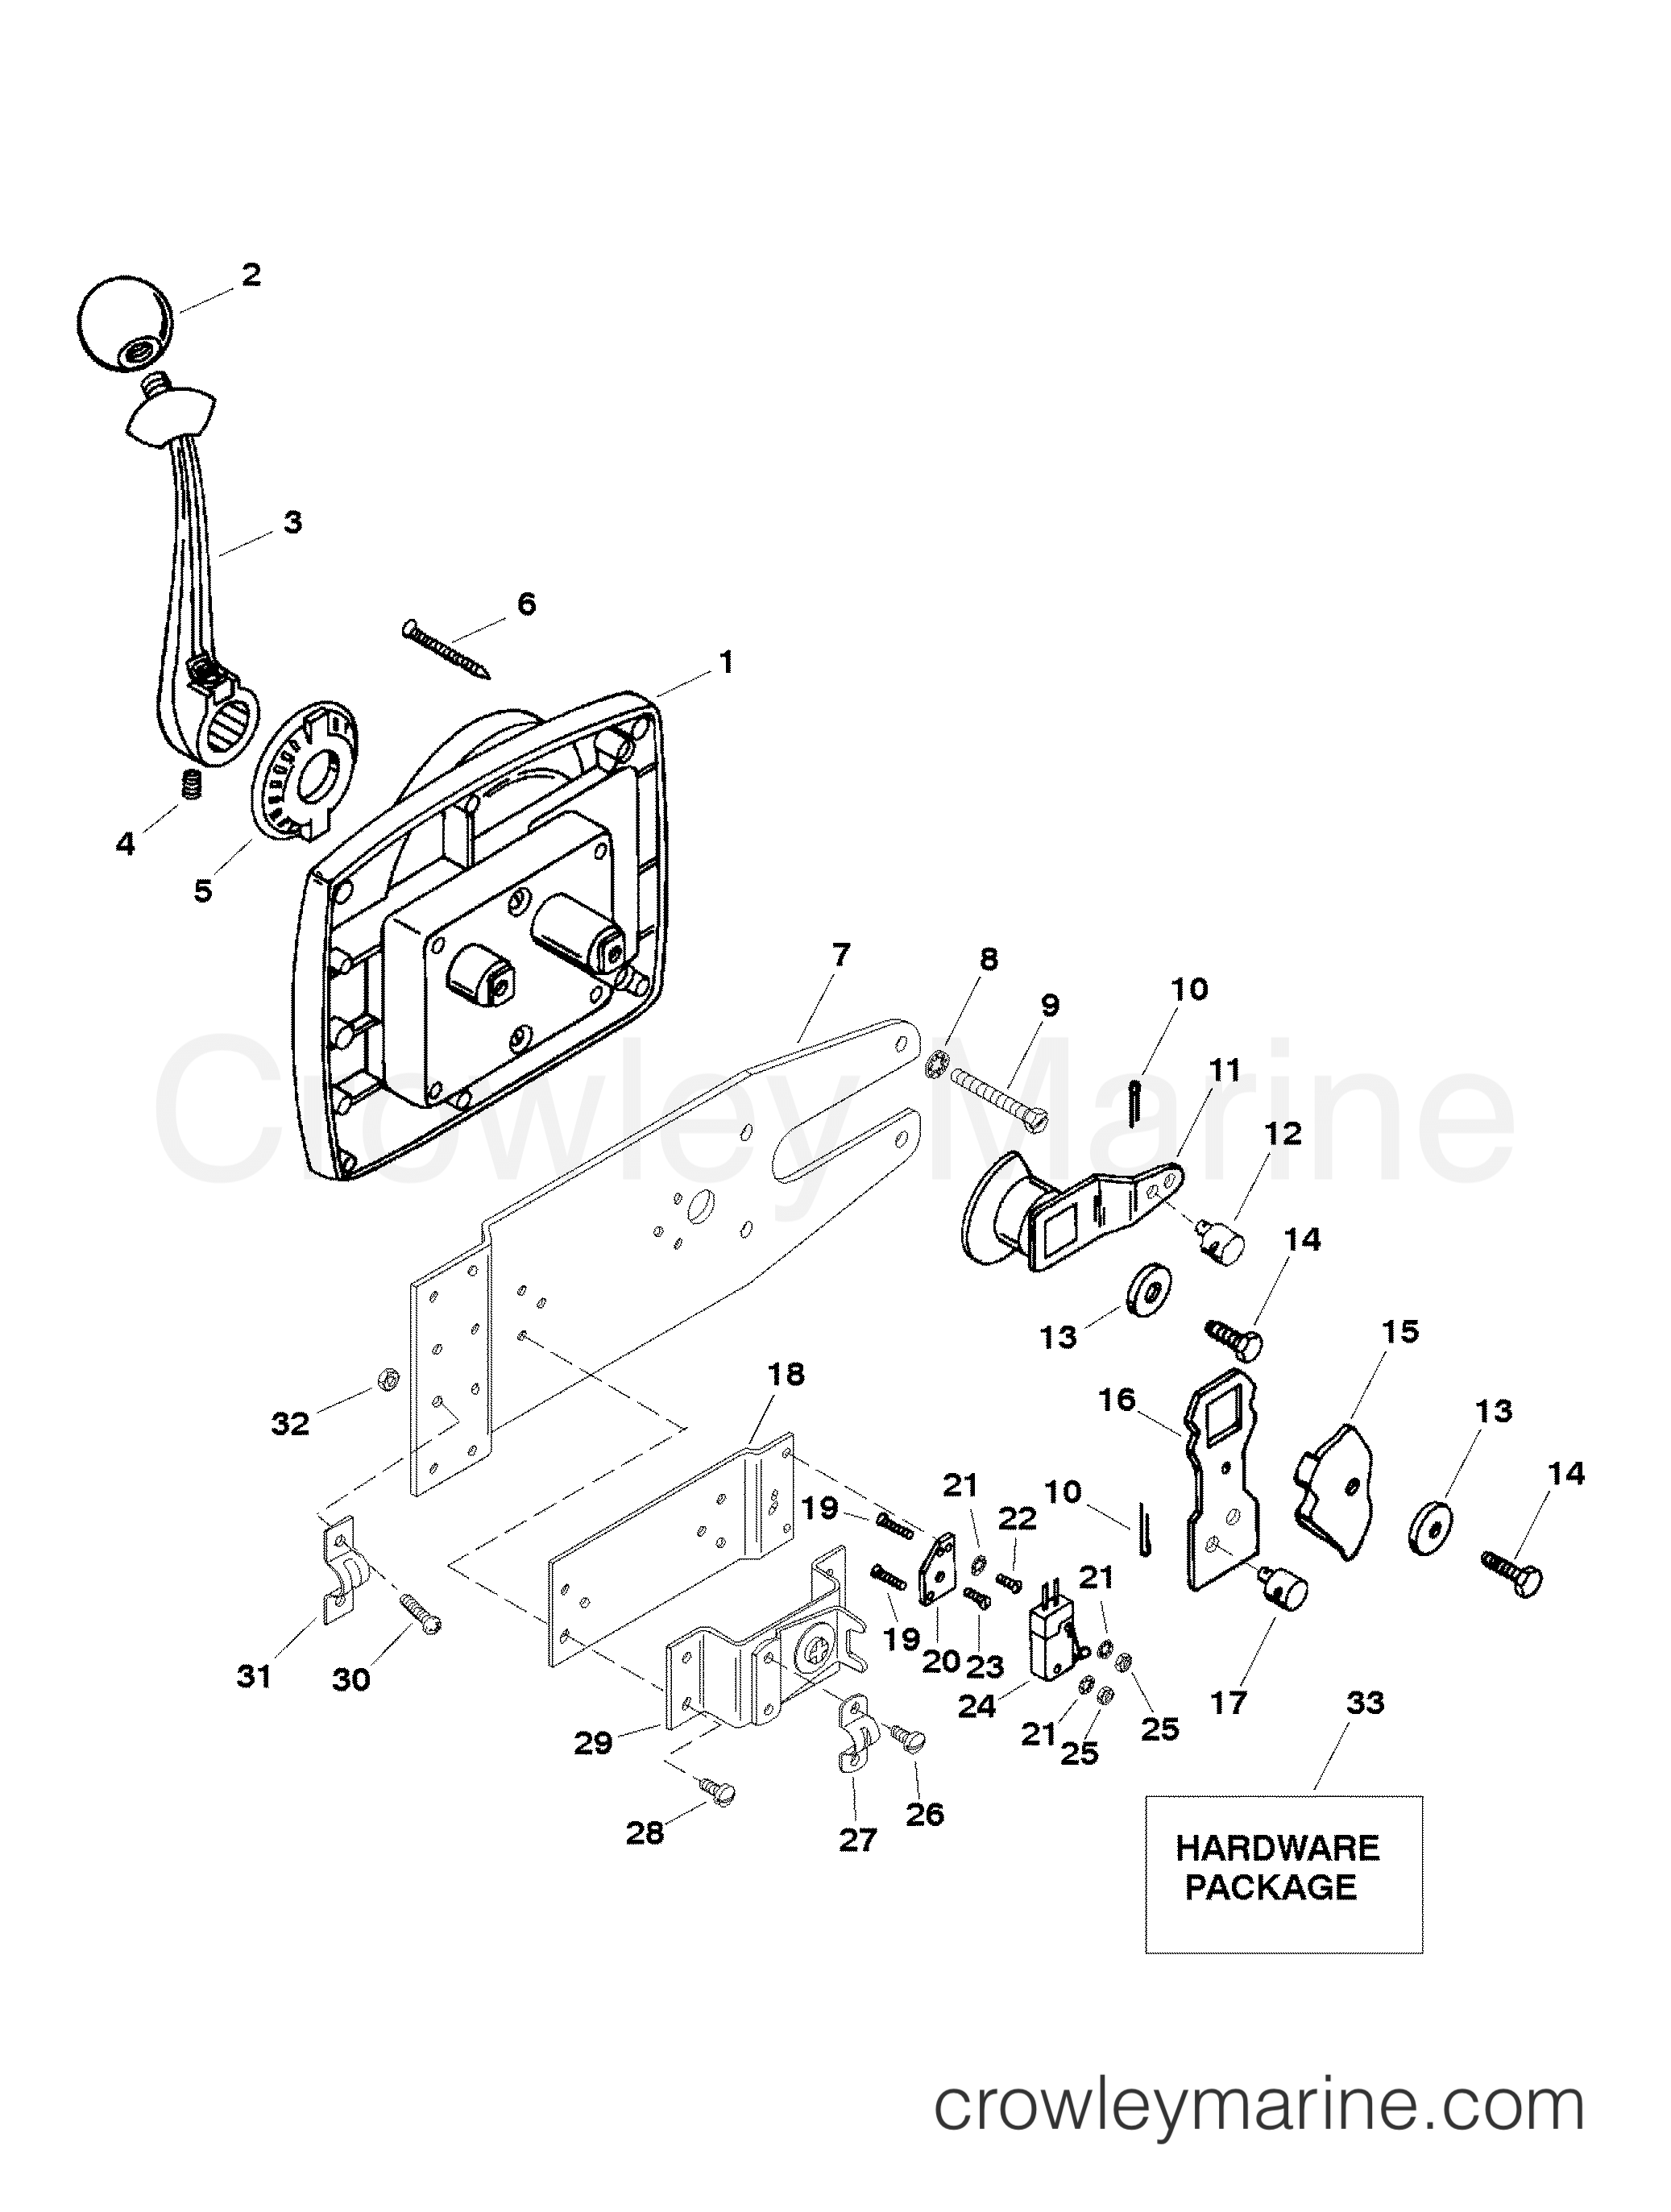 Remote Control Assembly 40 Series